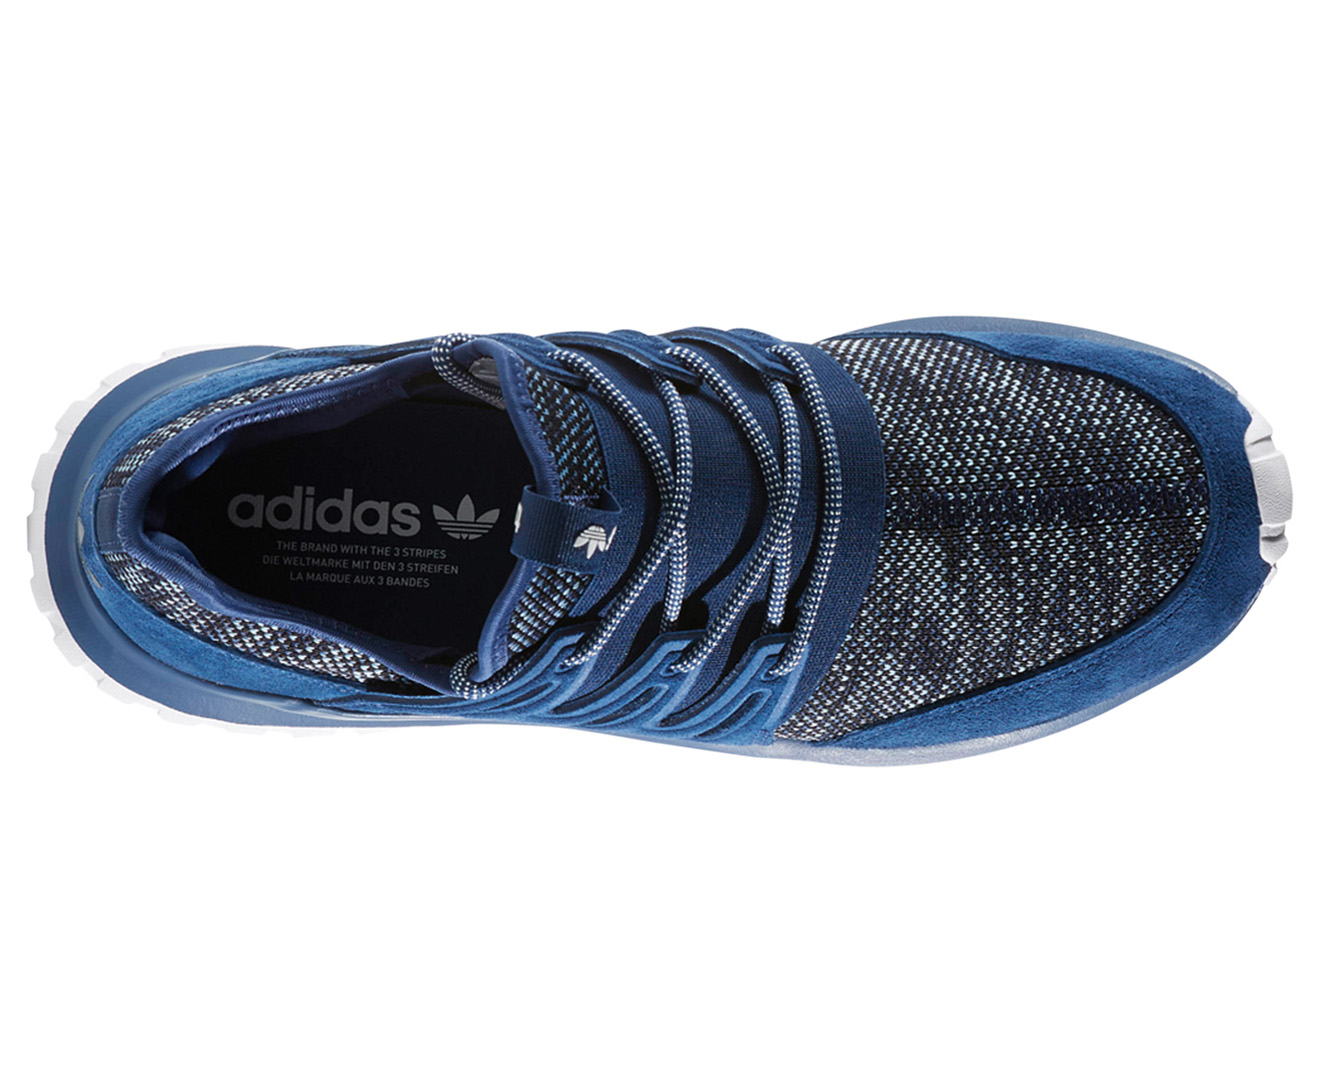 Adidas Originals Men S Tubular Radial Shoe Mystery Blue